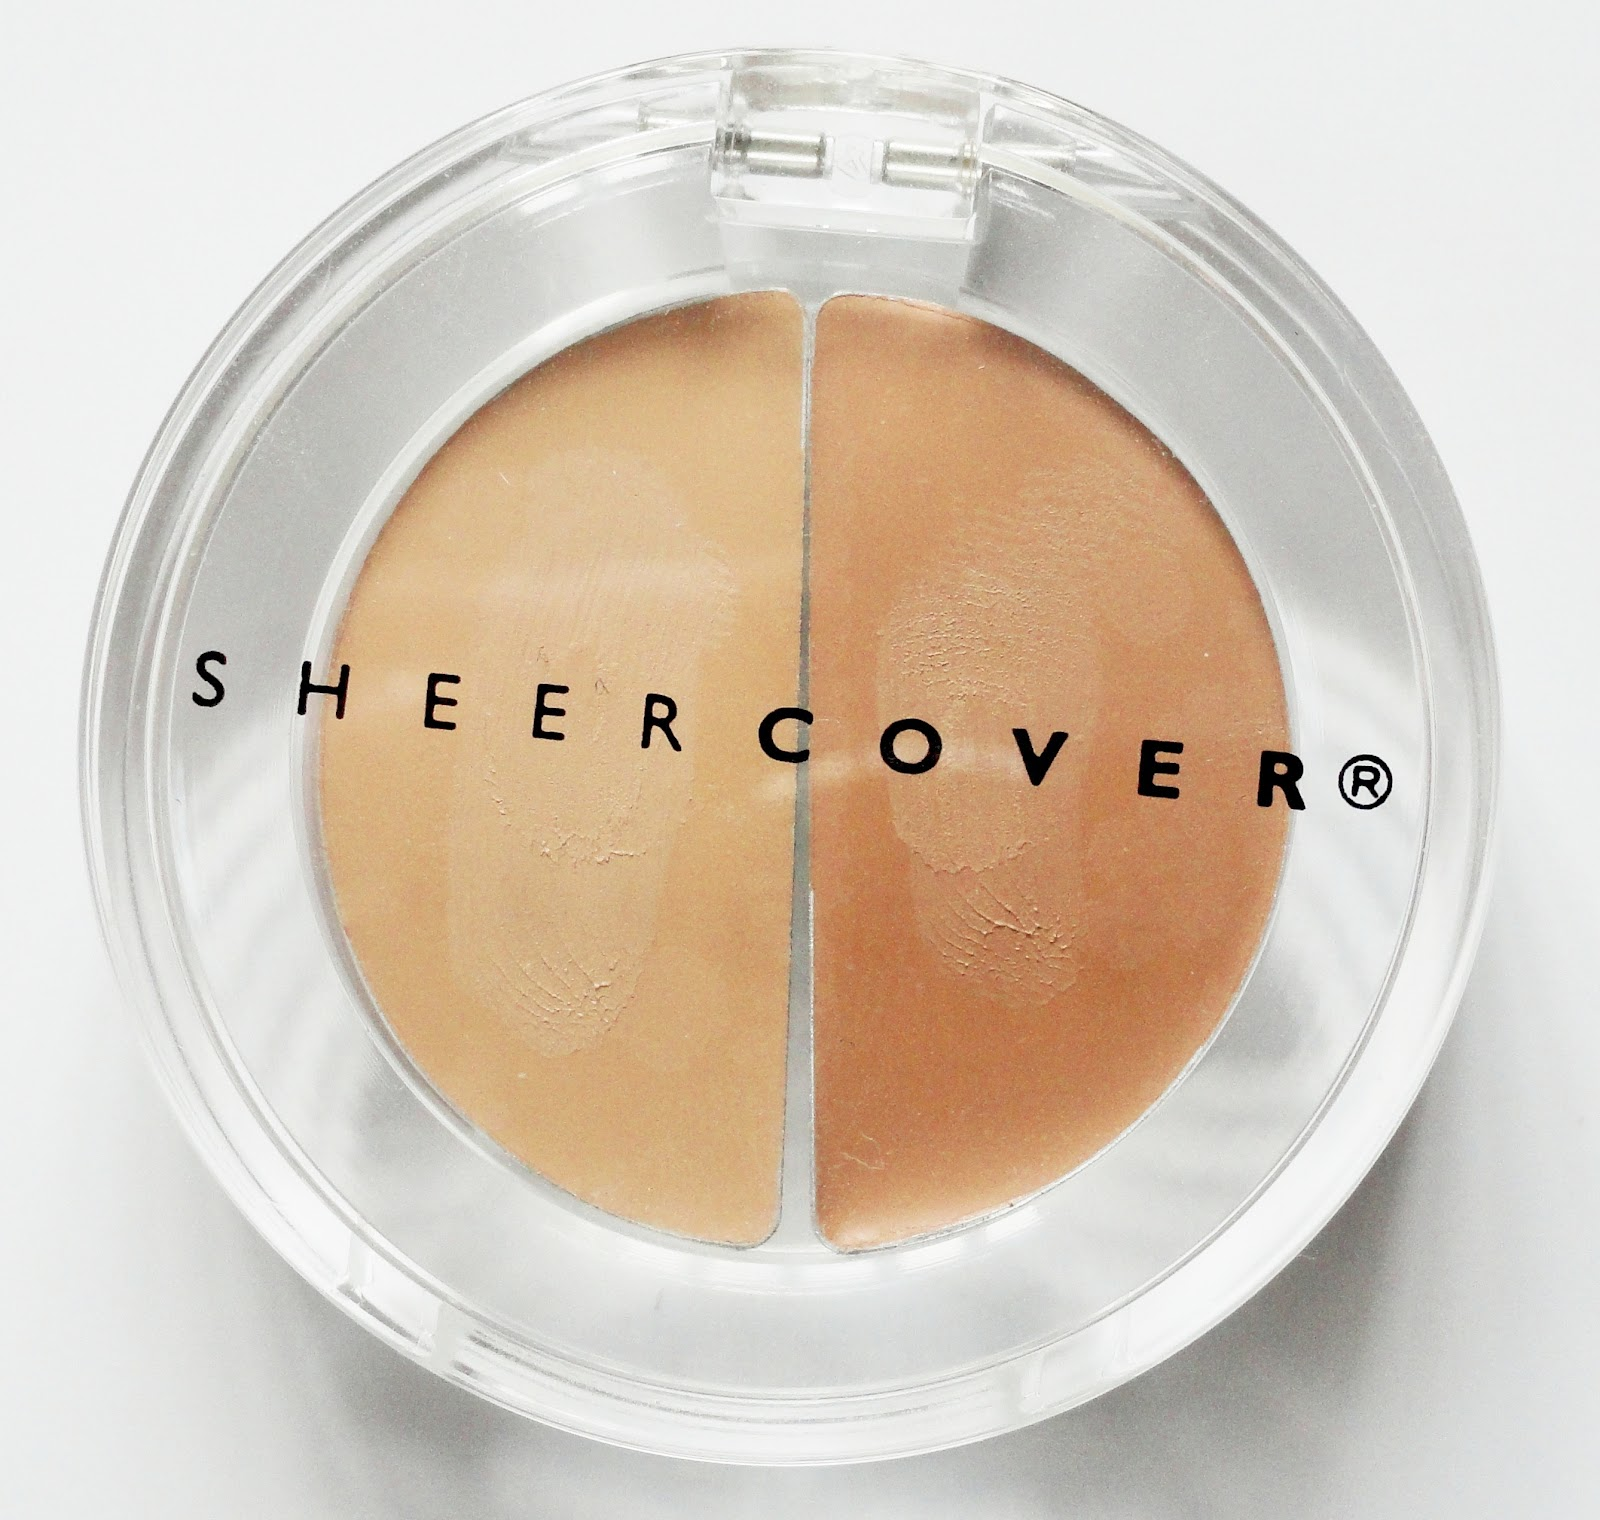 This one is the sheer cover duo concealer in the shade medium tan disclaimer i was sent this product for free by influenster but i am not being